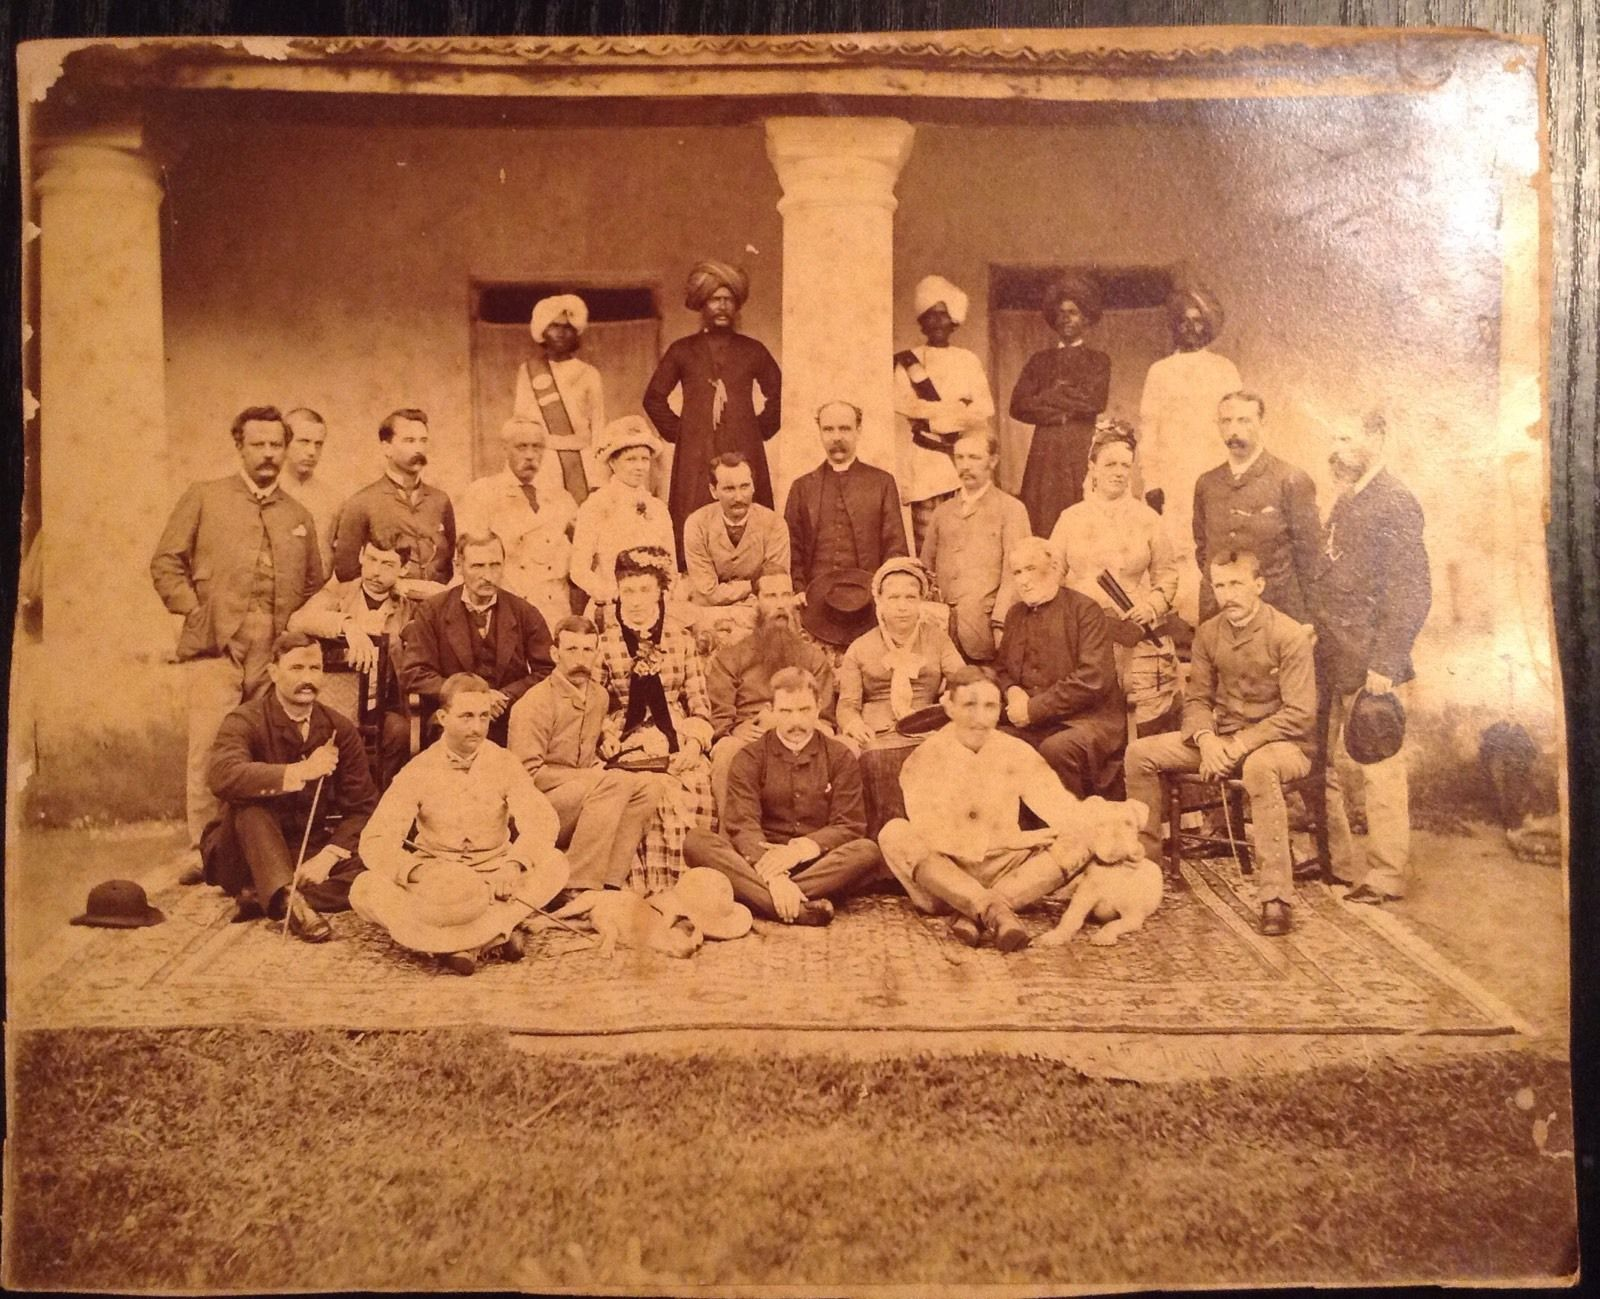 Group Photo of Europeans with Indian Servants - Date Unknown